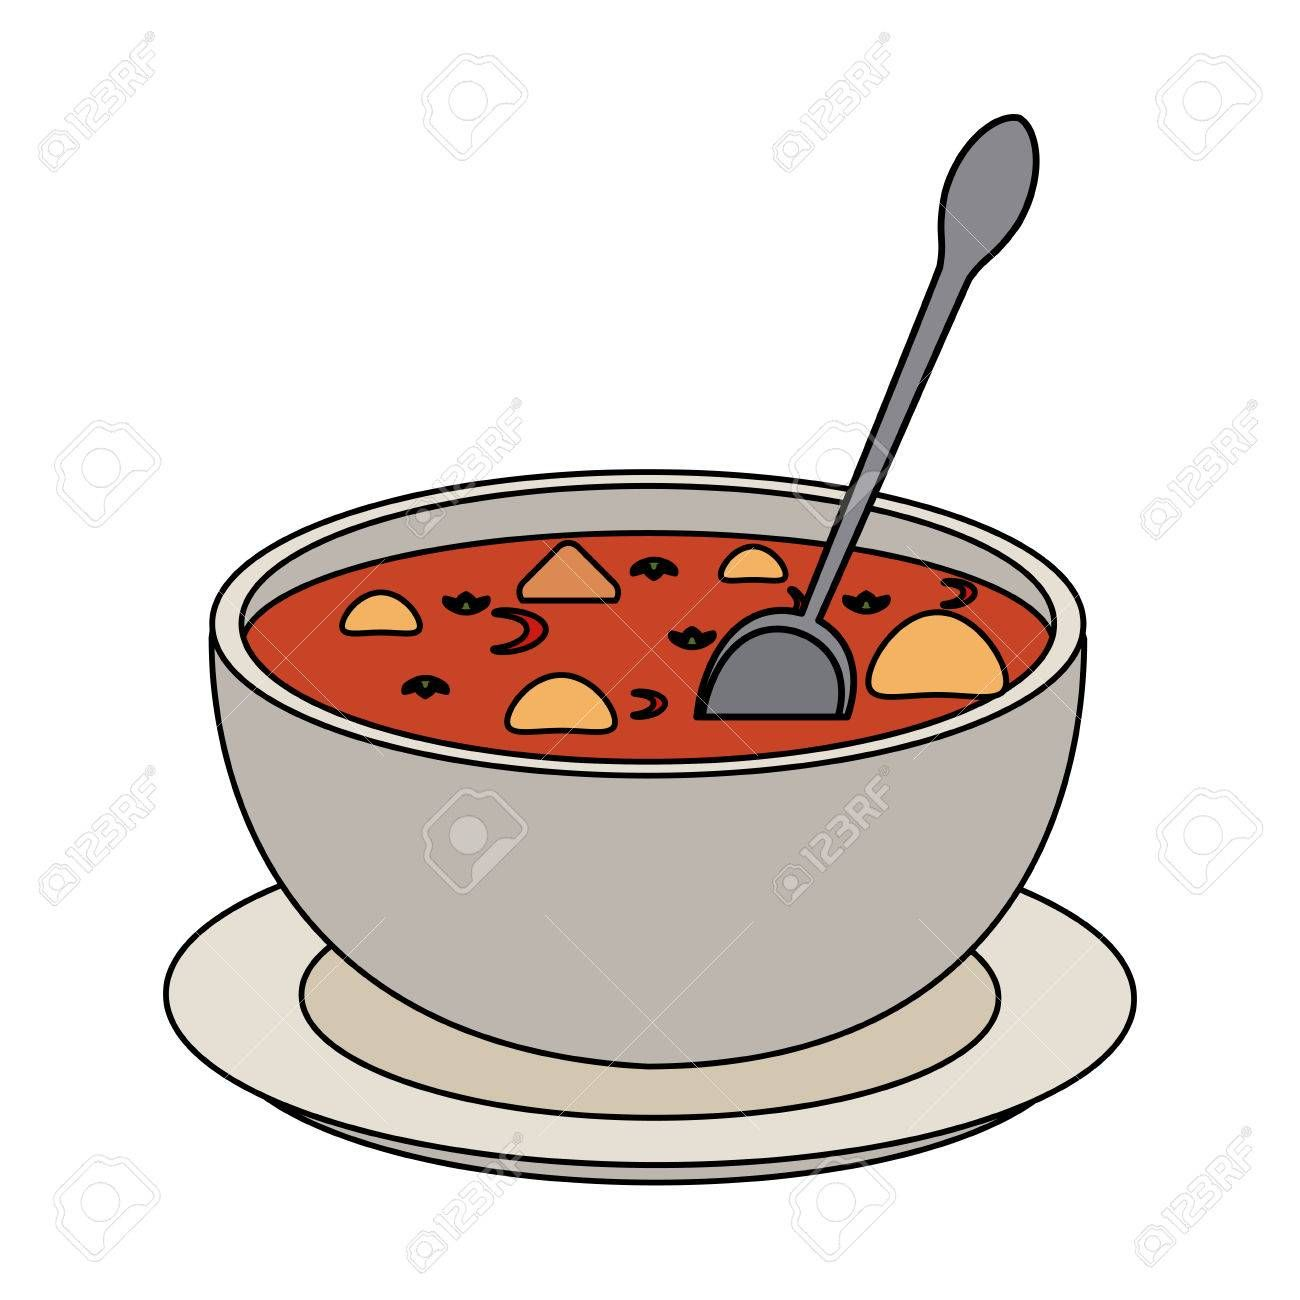 Image result for clipart of soup bowls.